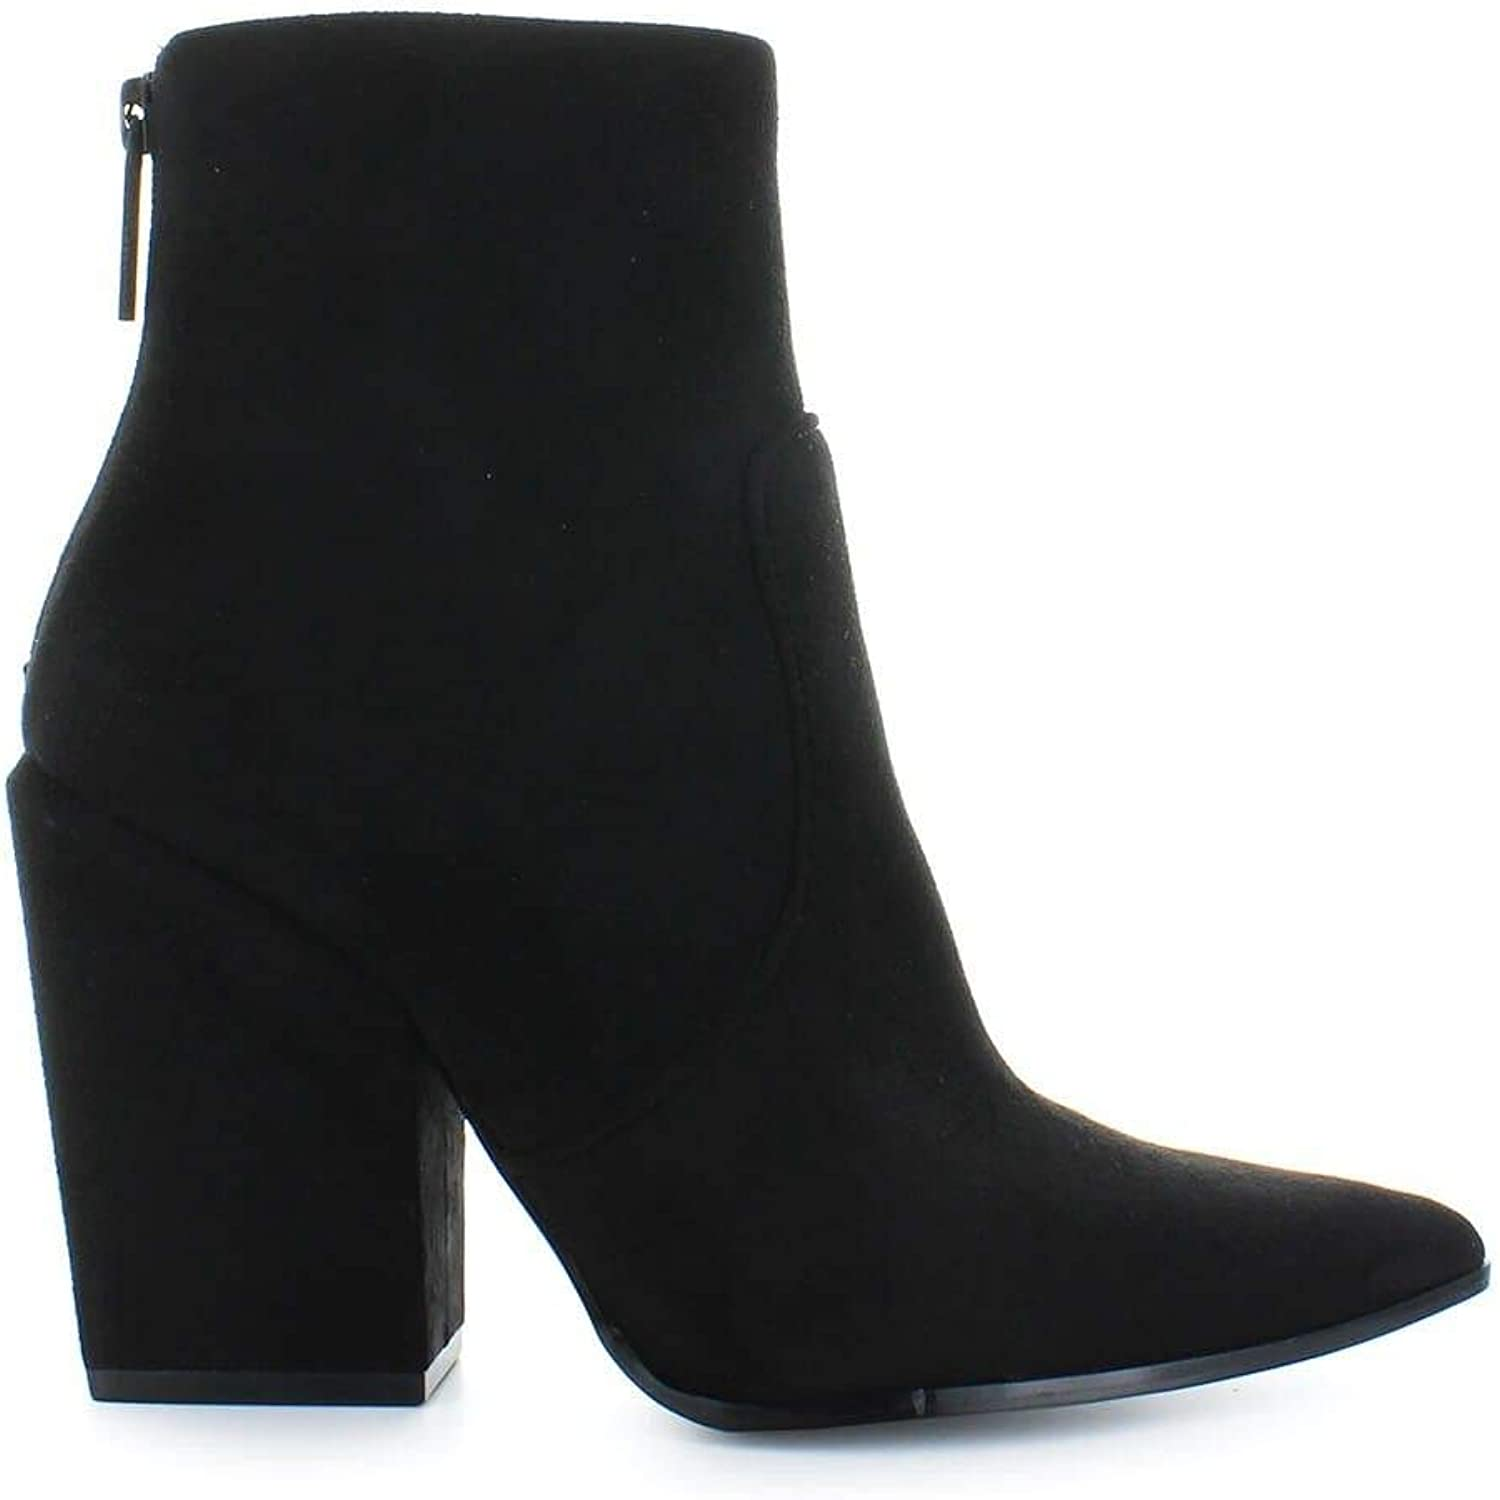 KENDALL + KYLIE Women's KKFIRE Black Suede Ankle Boots